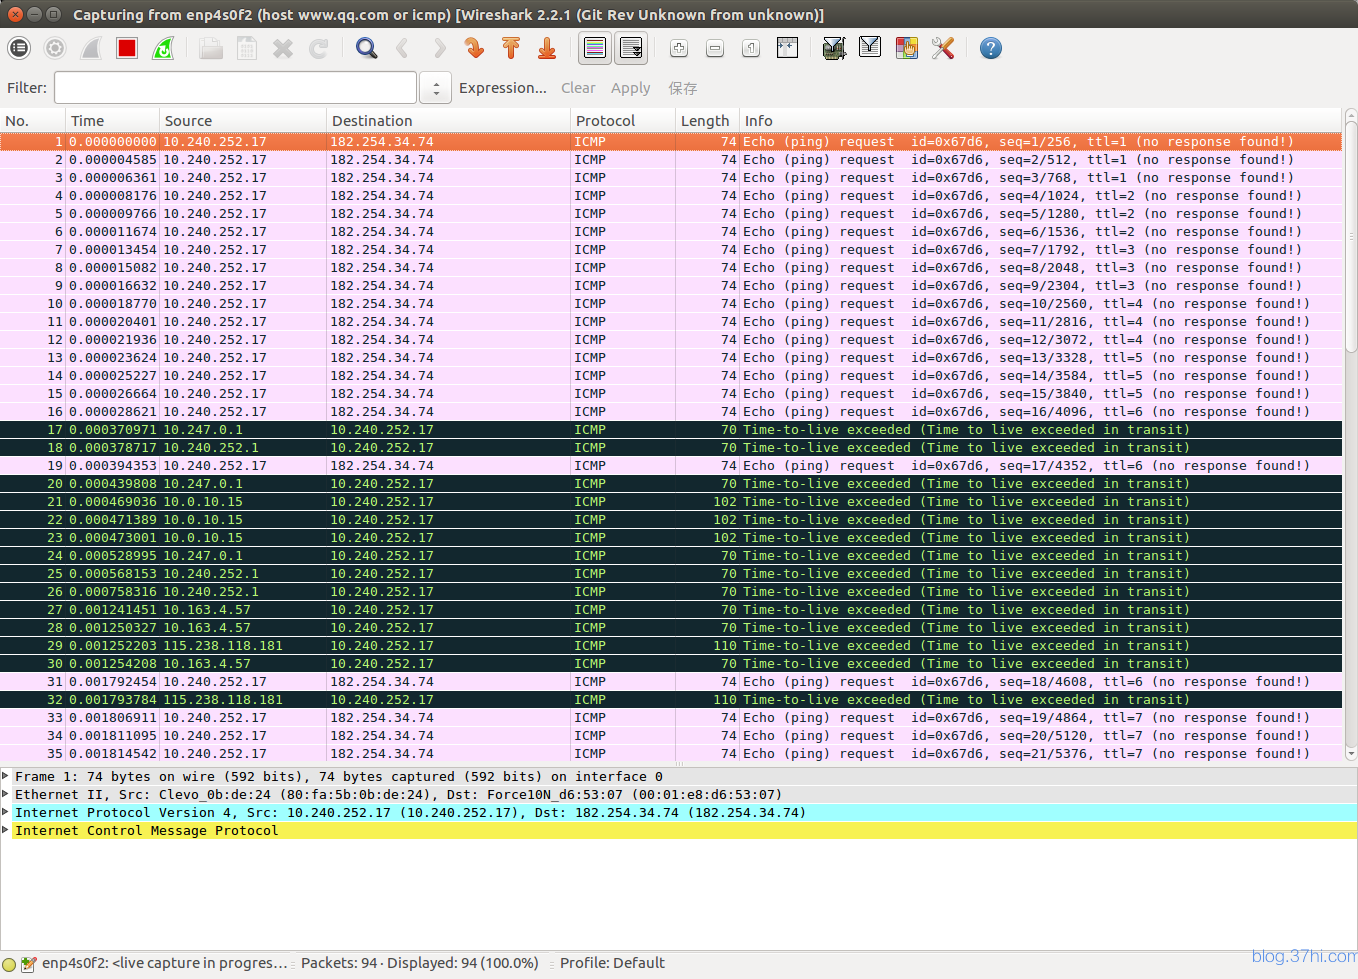 wireshark-icmp-6.png